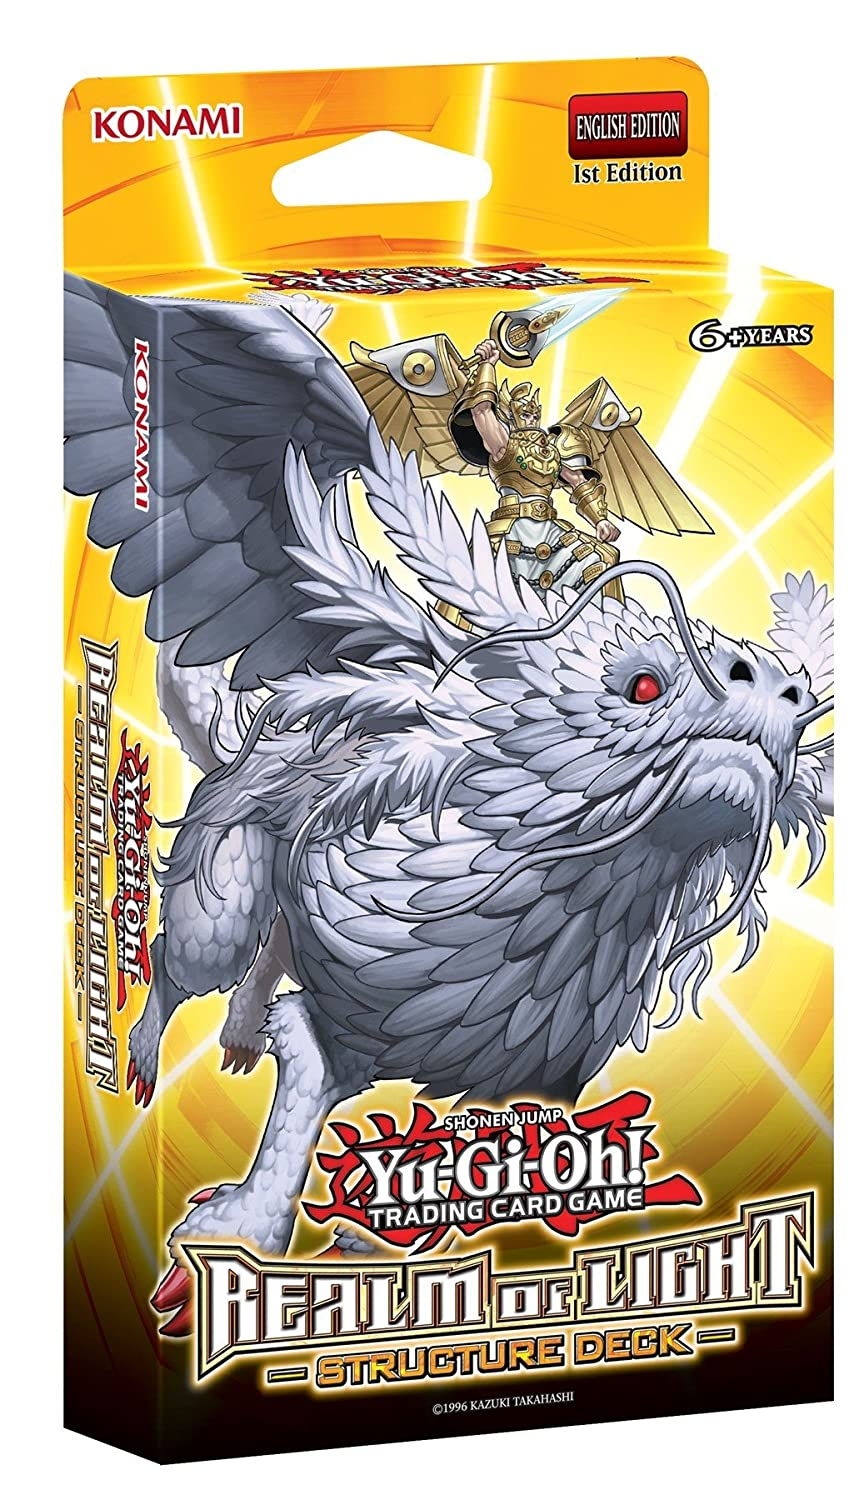 Amazon yu gi oh realm of light structure deck sealed toys amazon yu gi oh realm of light structure deck sealed toys games aloadofball Image collections